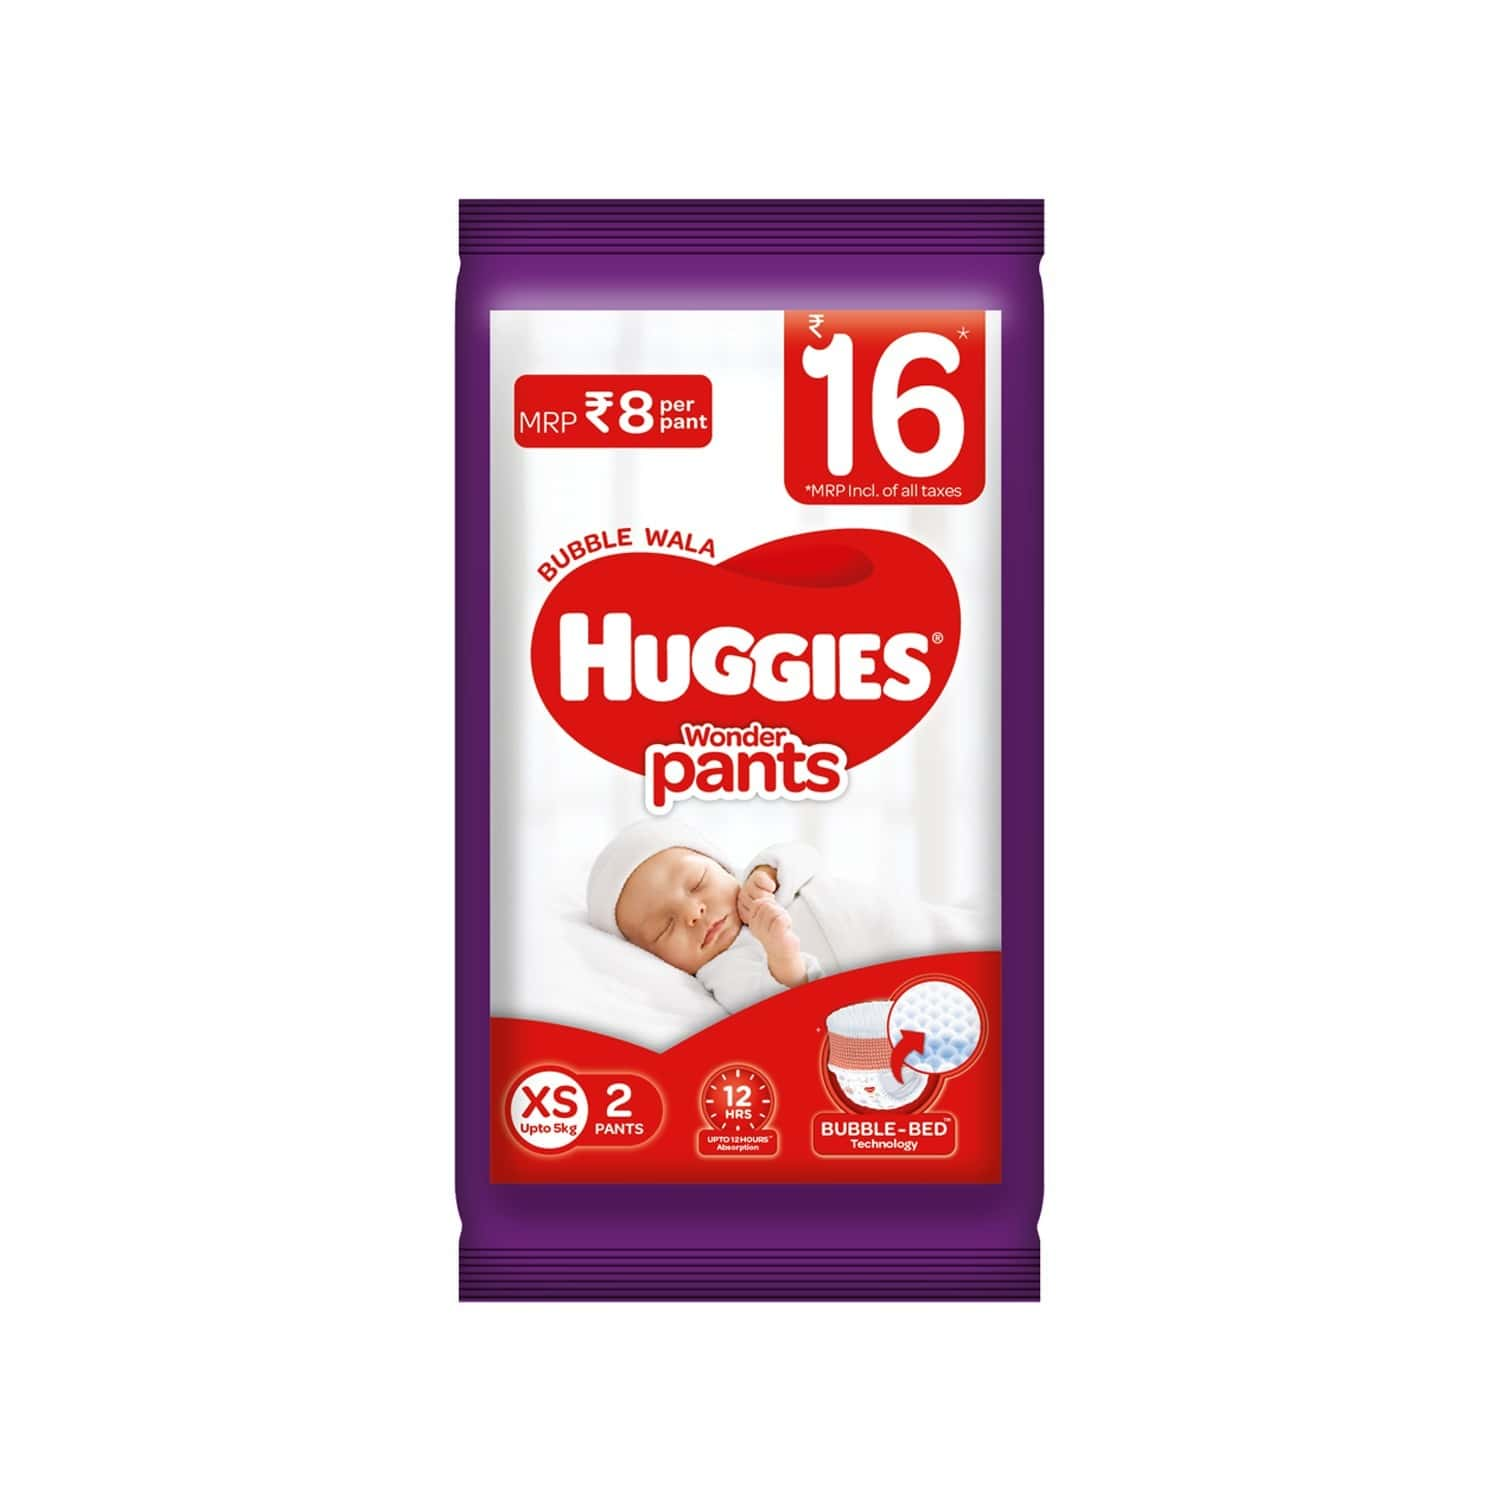 Huggies Wonder Pants Diapers, Extra Small Size - 2 Count